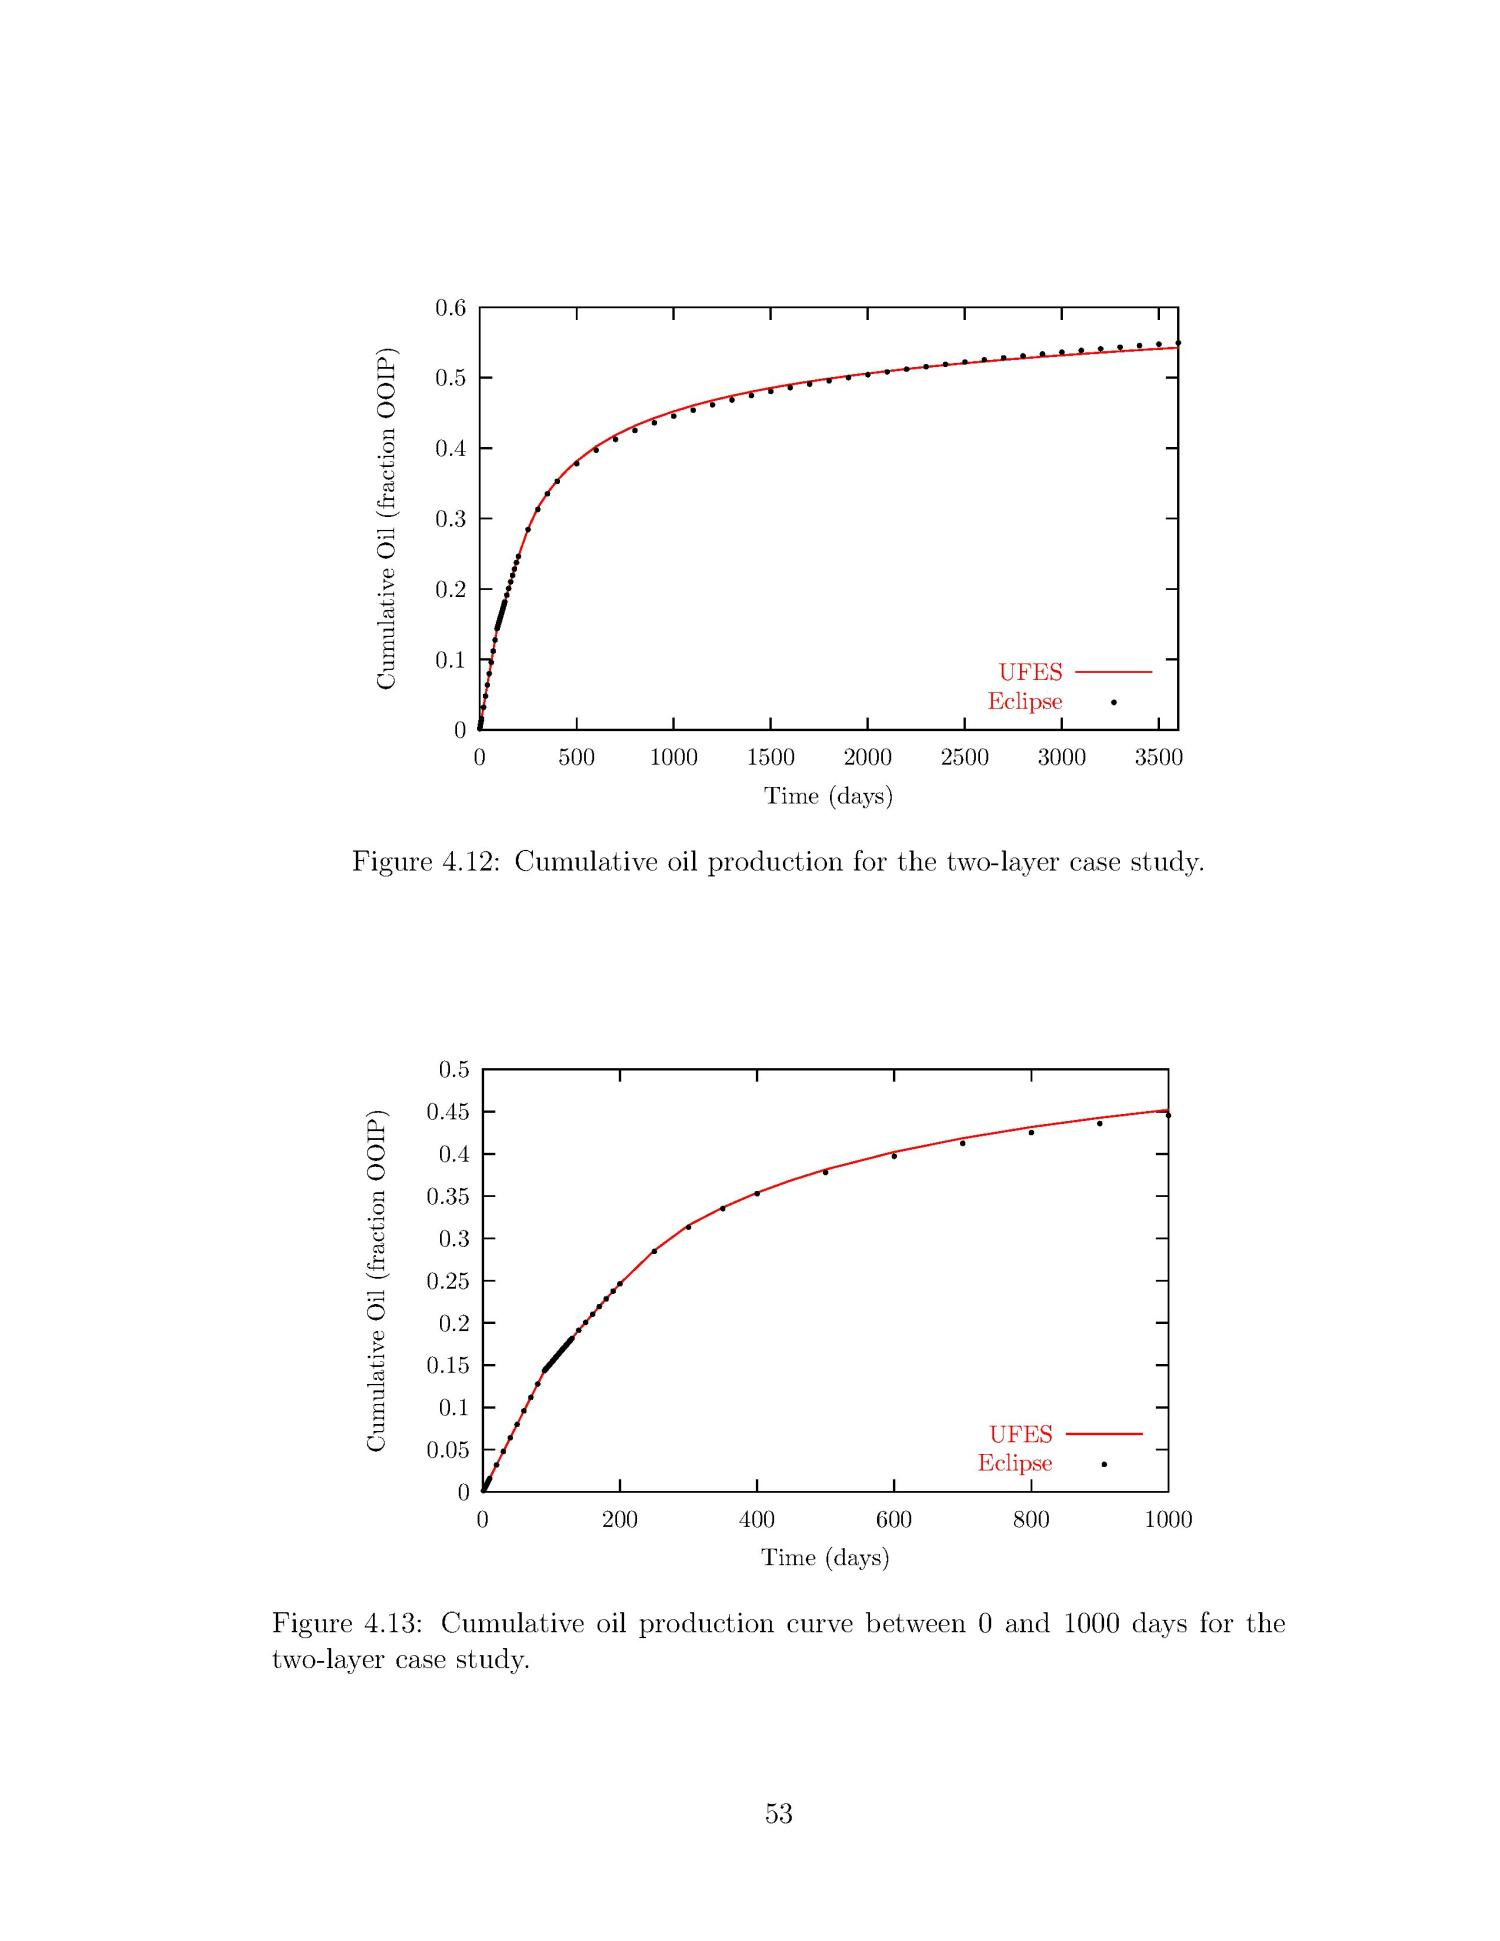 On-line Optimization-Based Simulators for Fractured and Non-fractured Reservoirs                                                                                                      [Sequence #]: 67 of 188